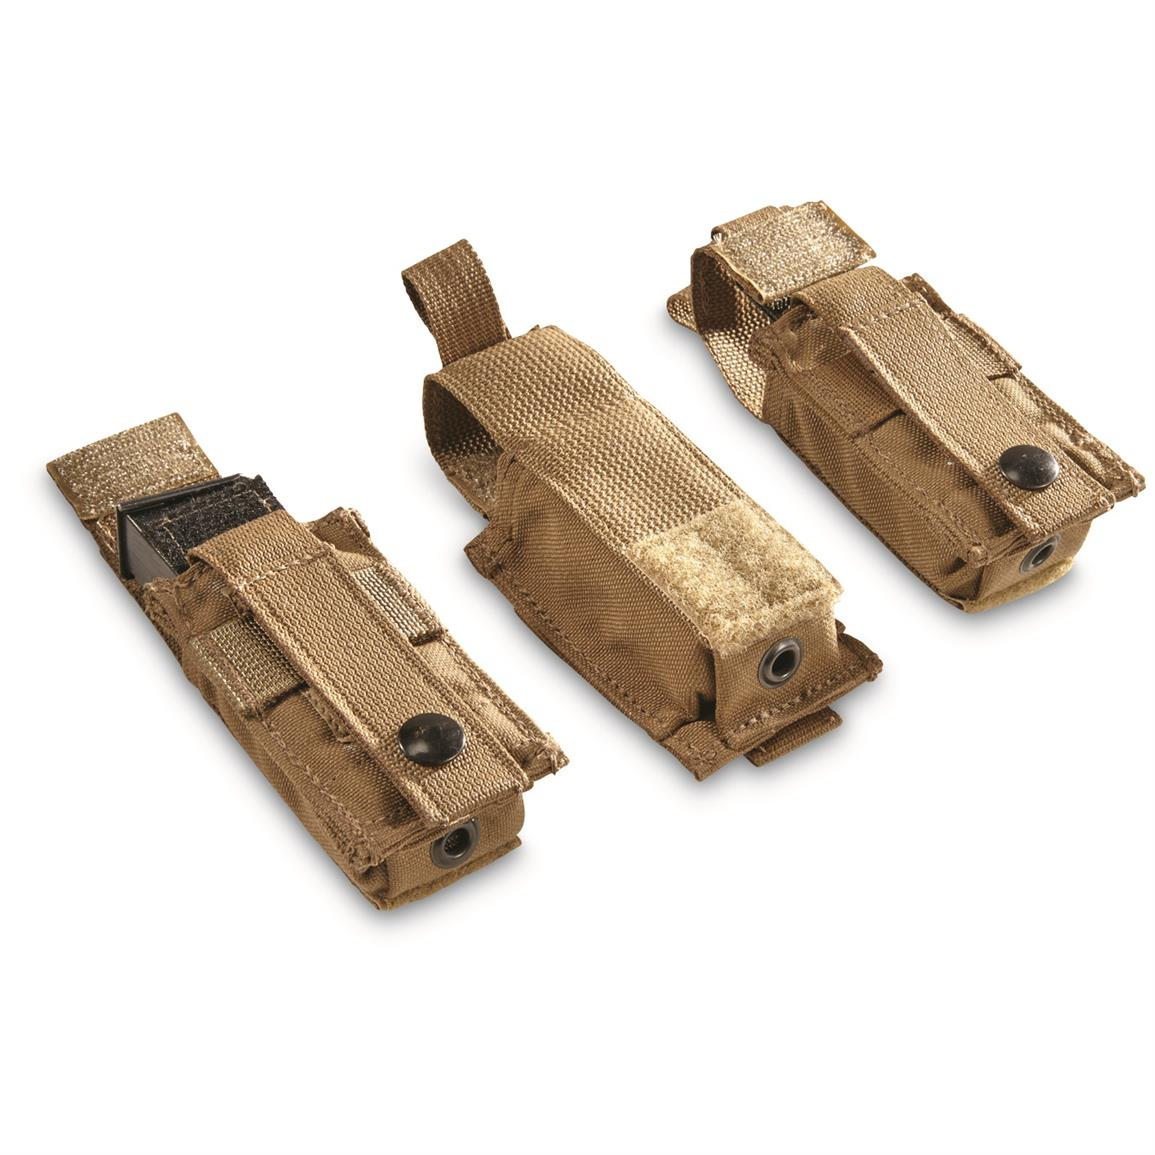 U.S. Military Issue 9mm Mag Pouches, 3 Pack, New